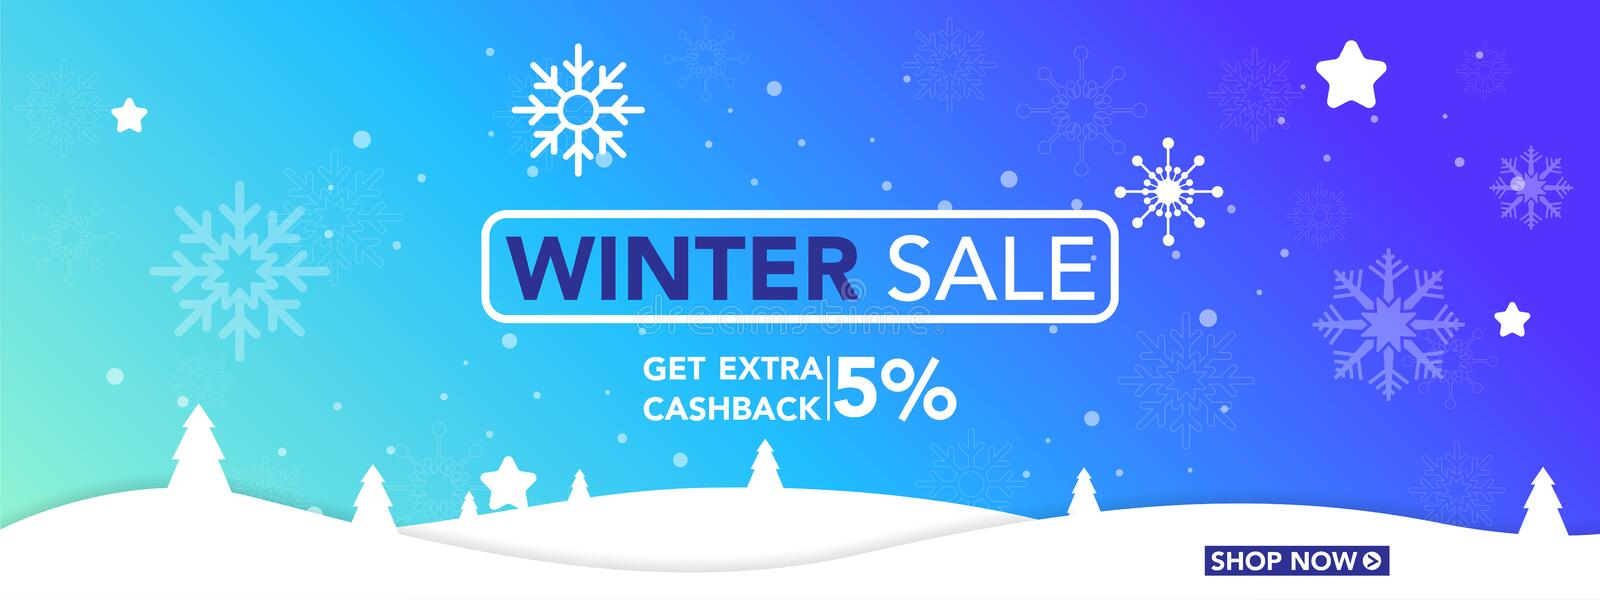 Winter sale banner template with snow flakes, ice snow shopping sale. end of winter Vector illustration. Template royalty free illustration